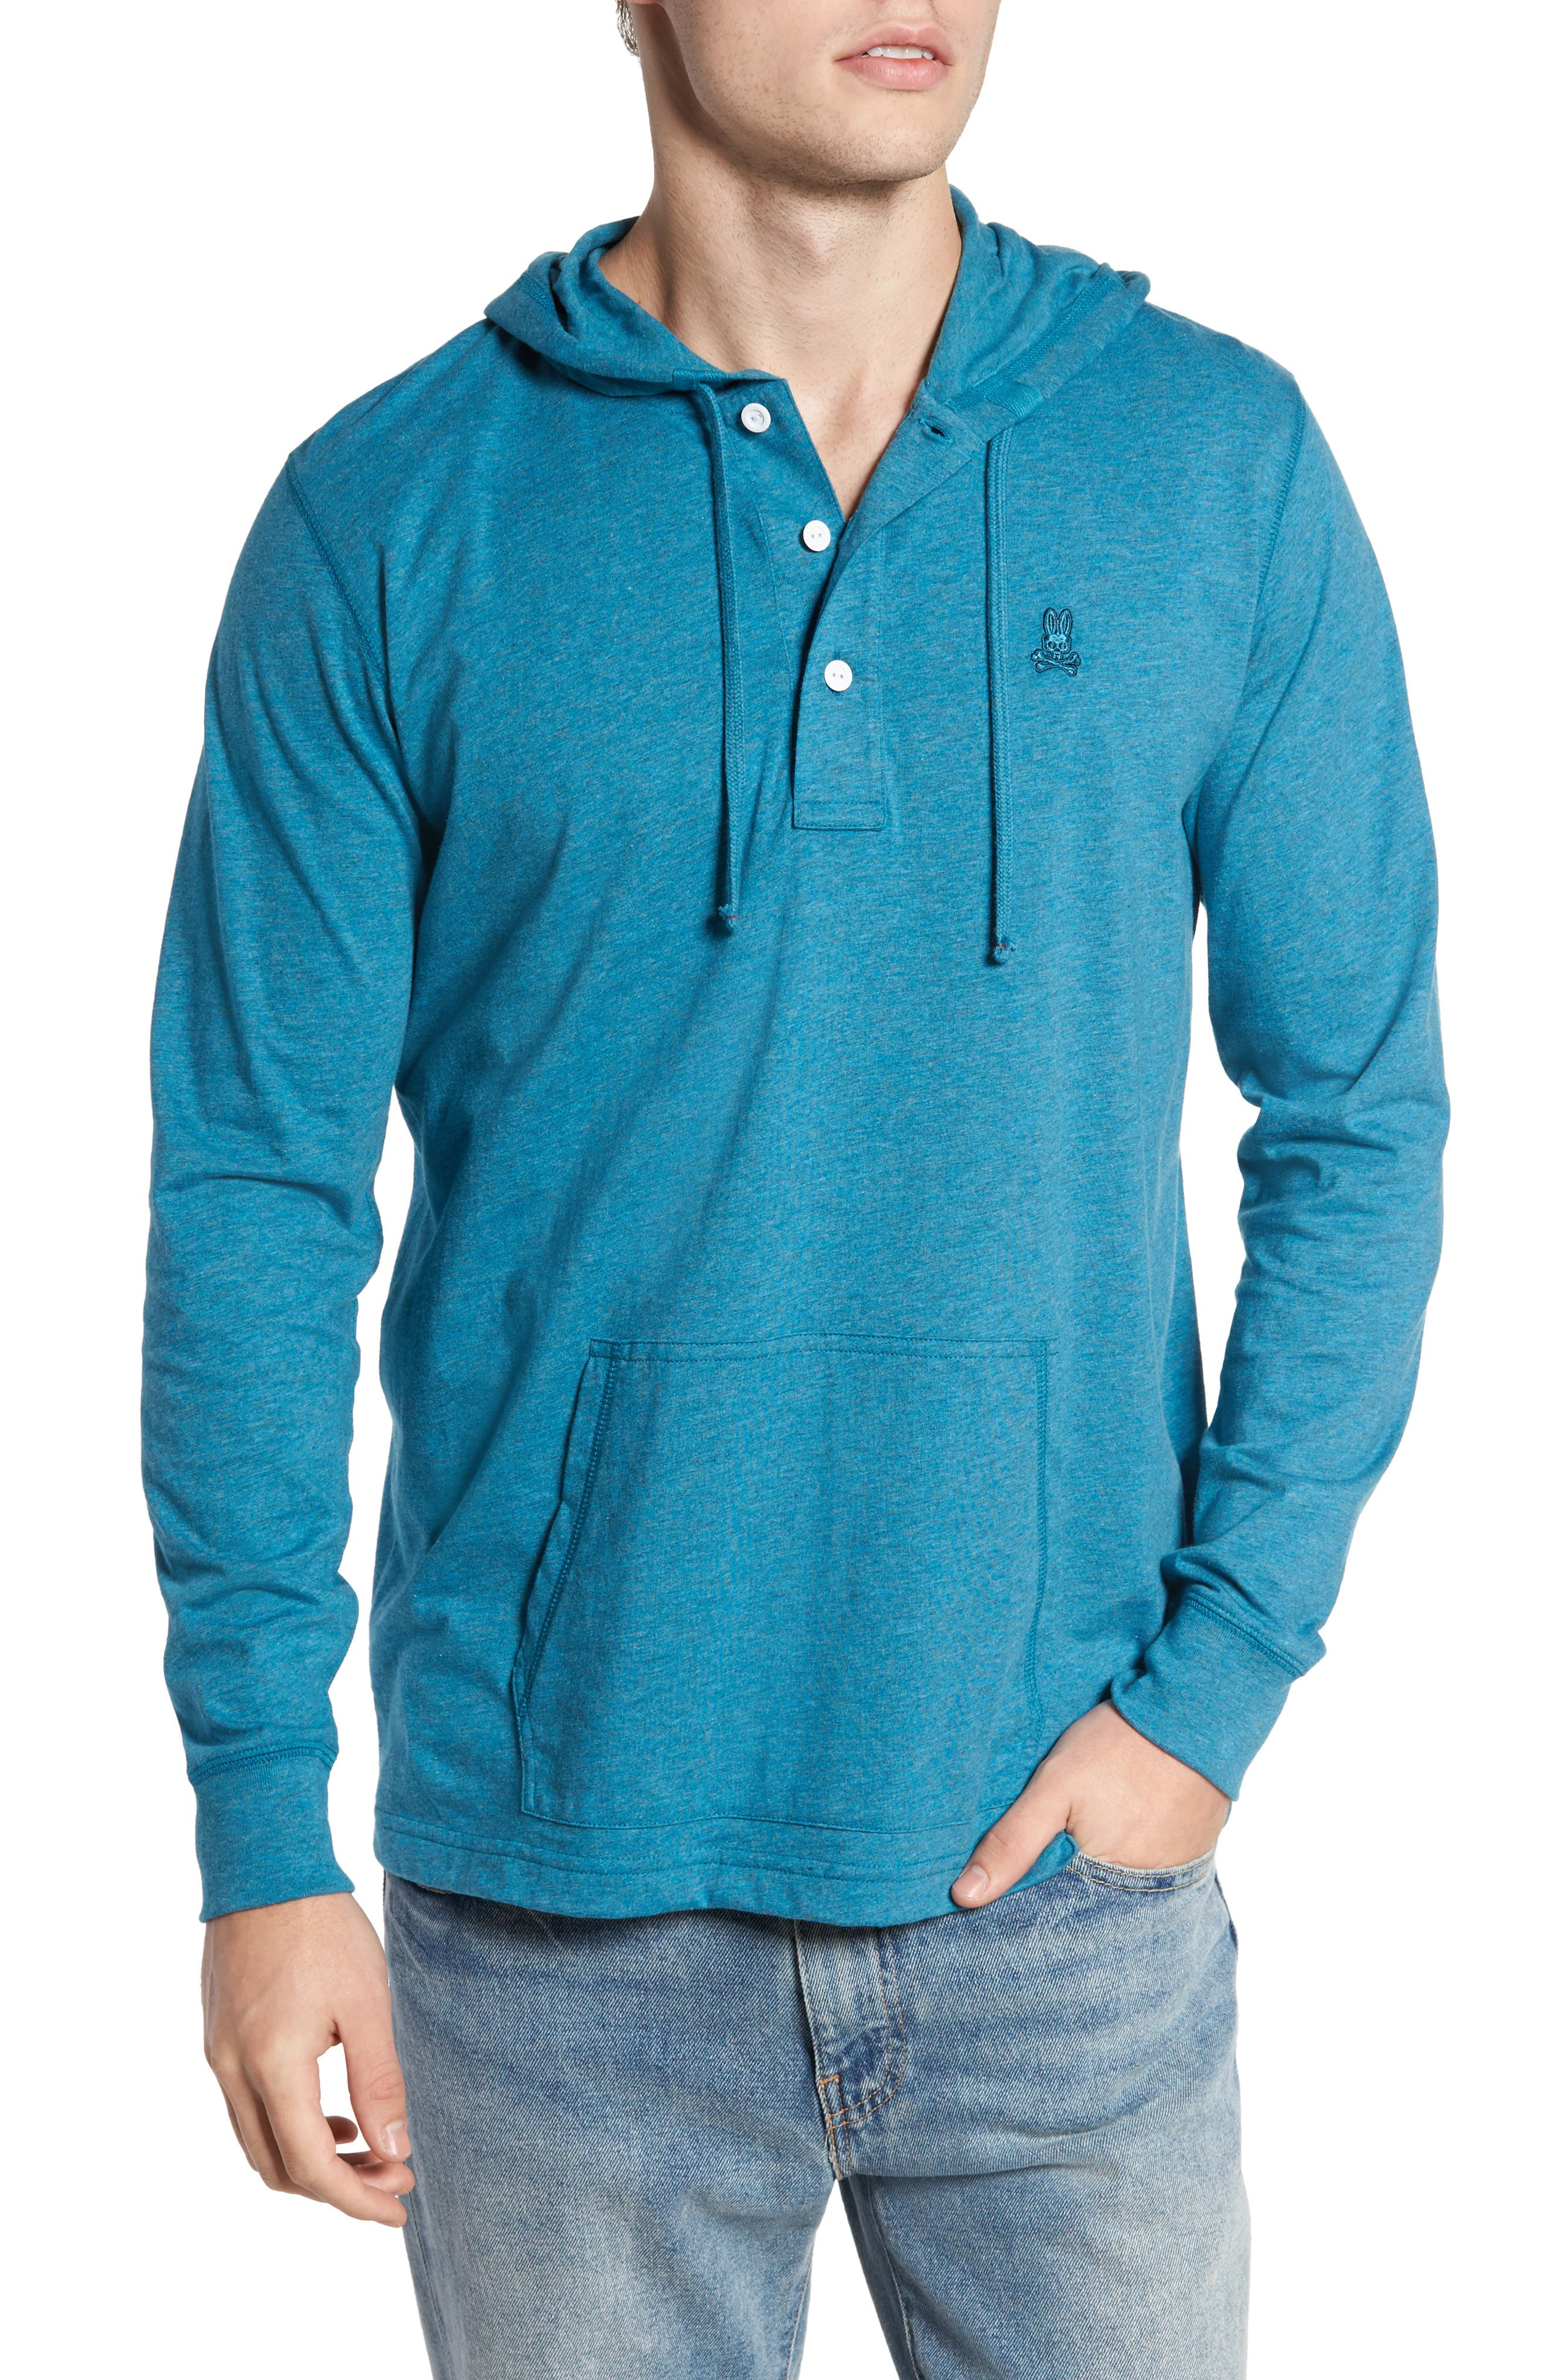 Delano Henley Hoodie,                             Main thumbnail 1, color,                             Heather Teal